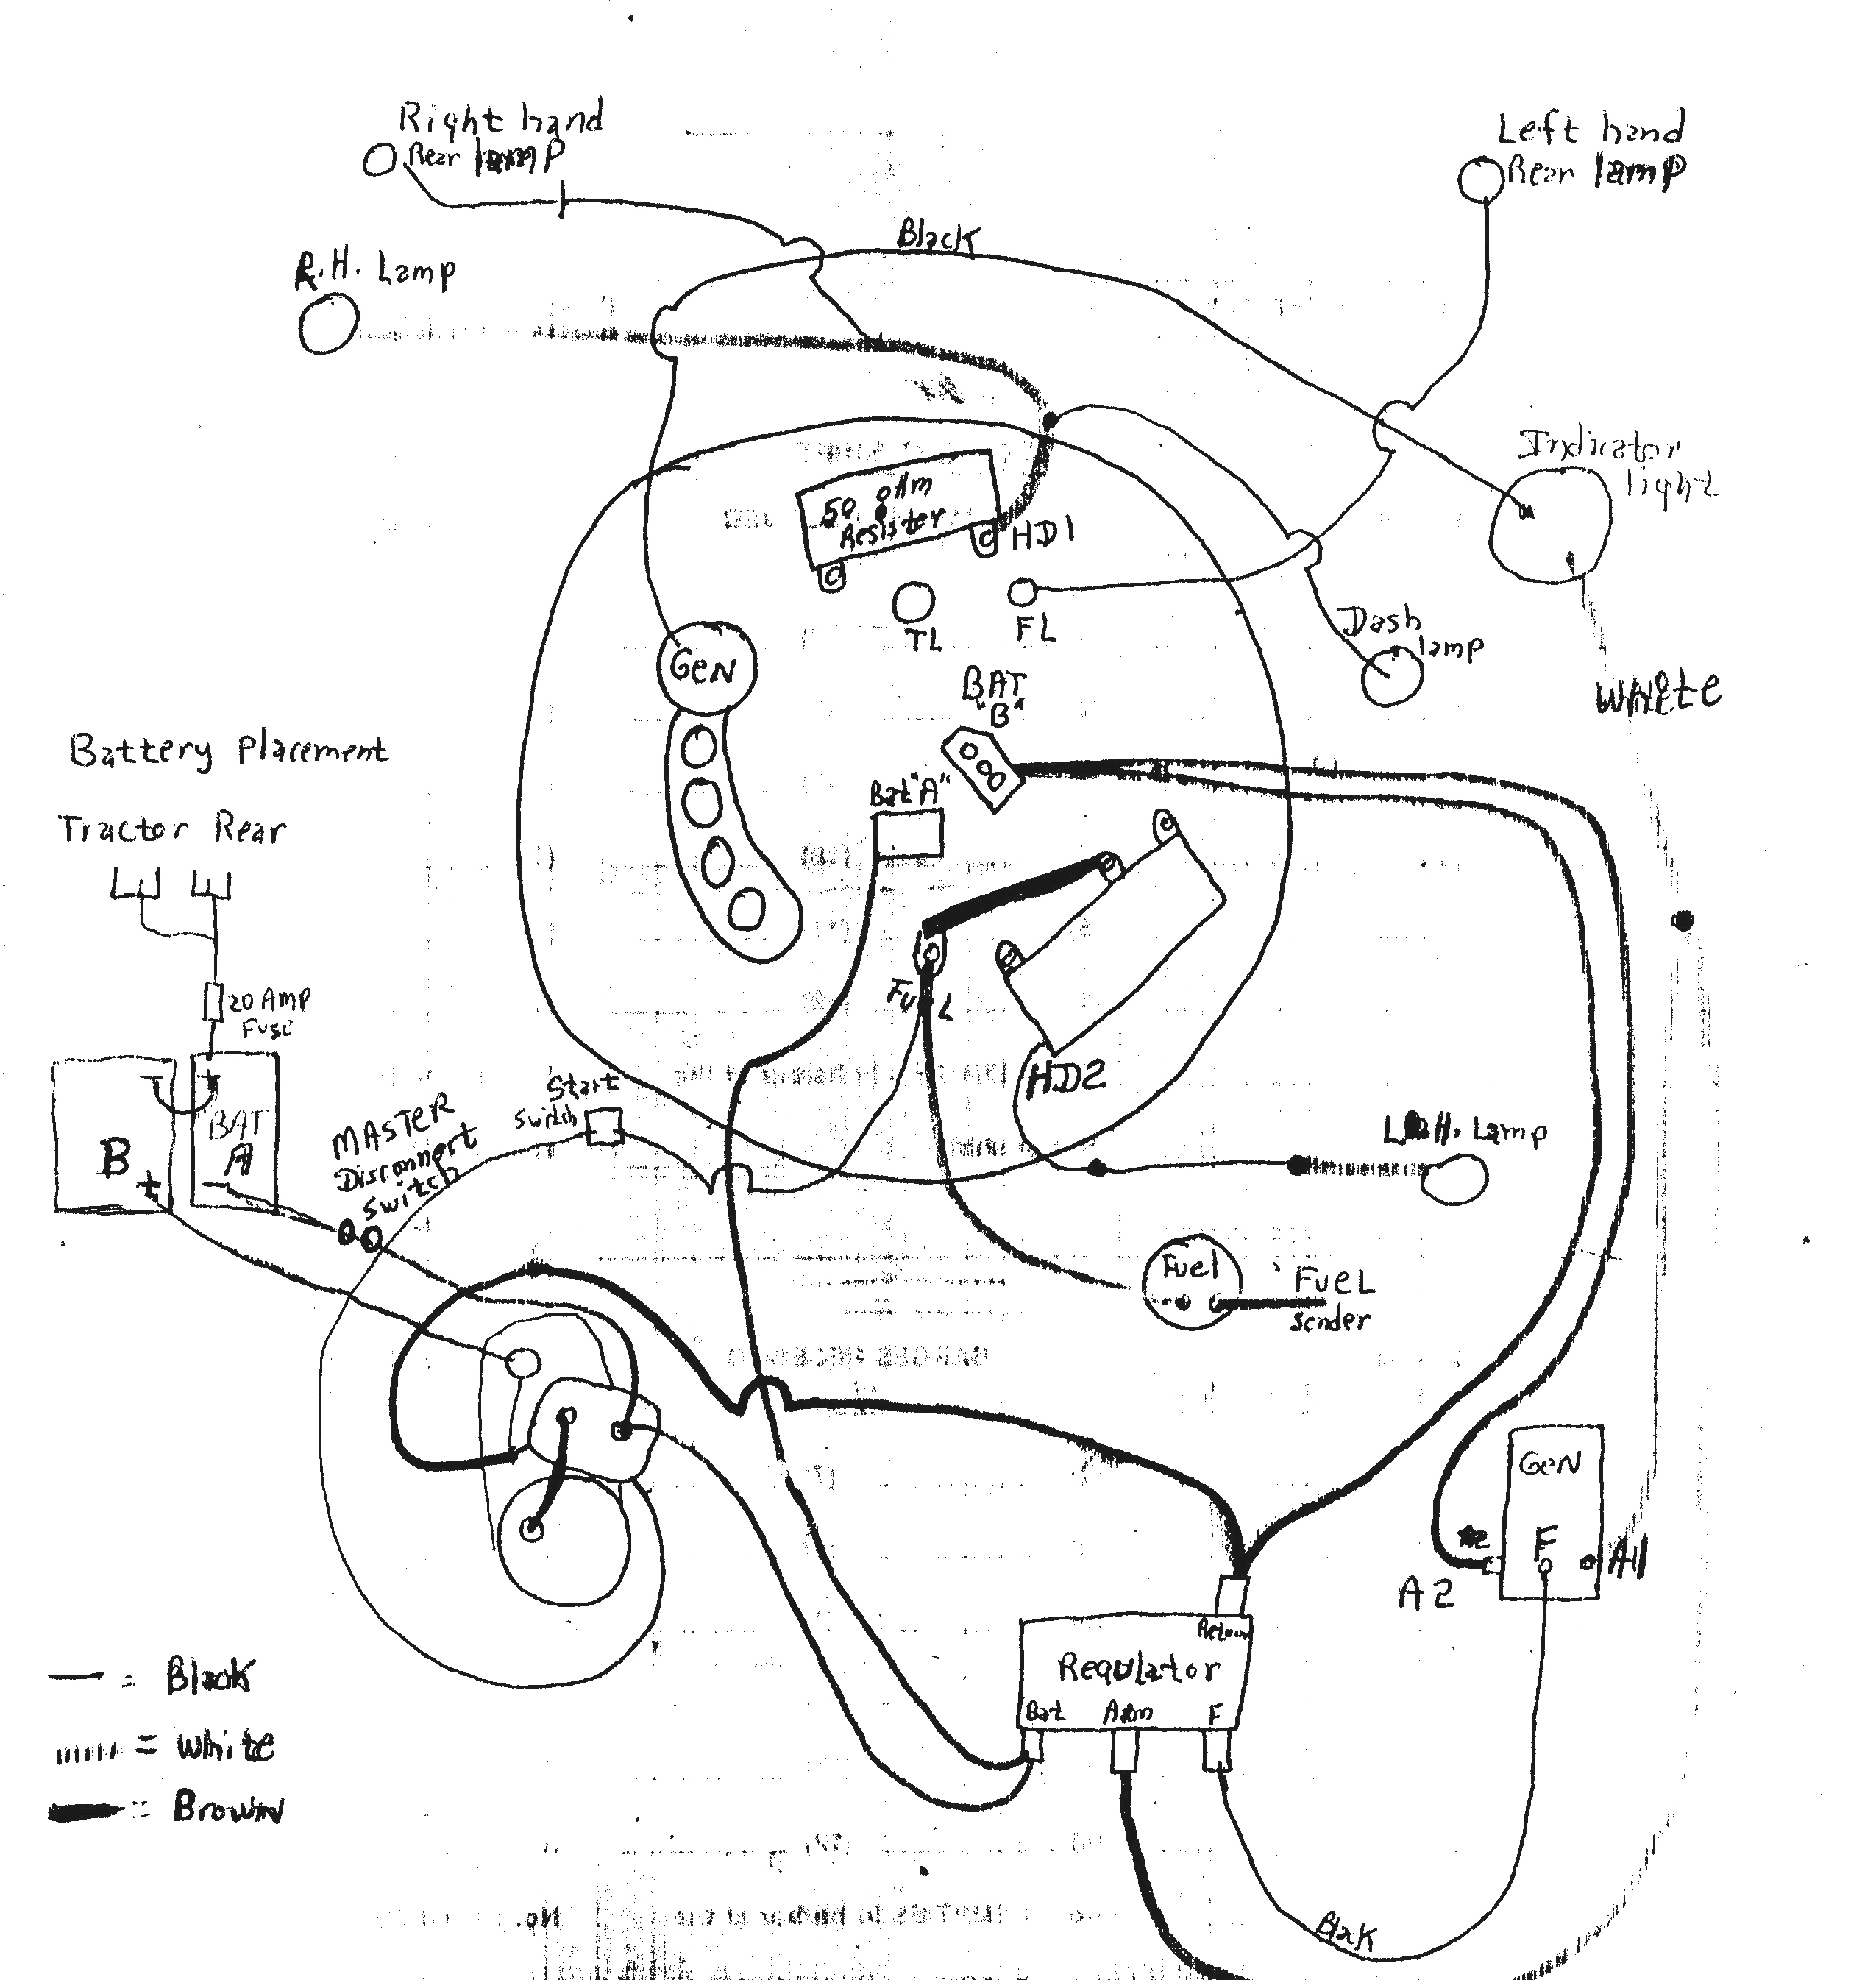 kohler engine charging system diagram  kohler  wiring diagram images